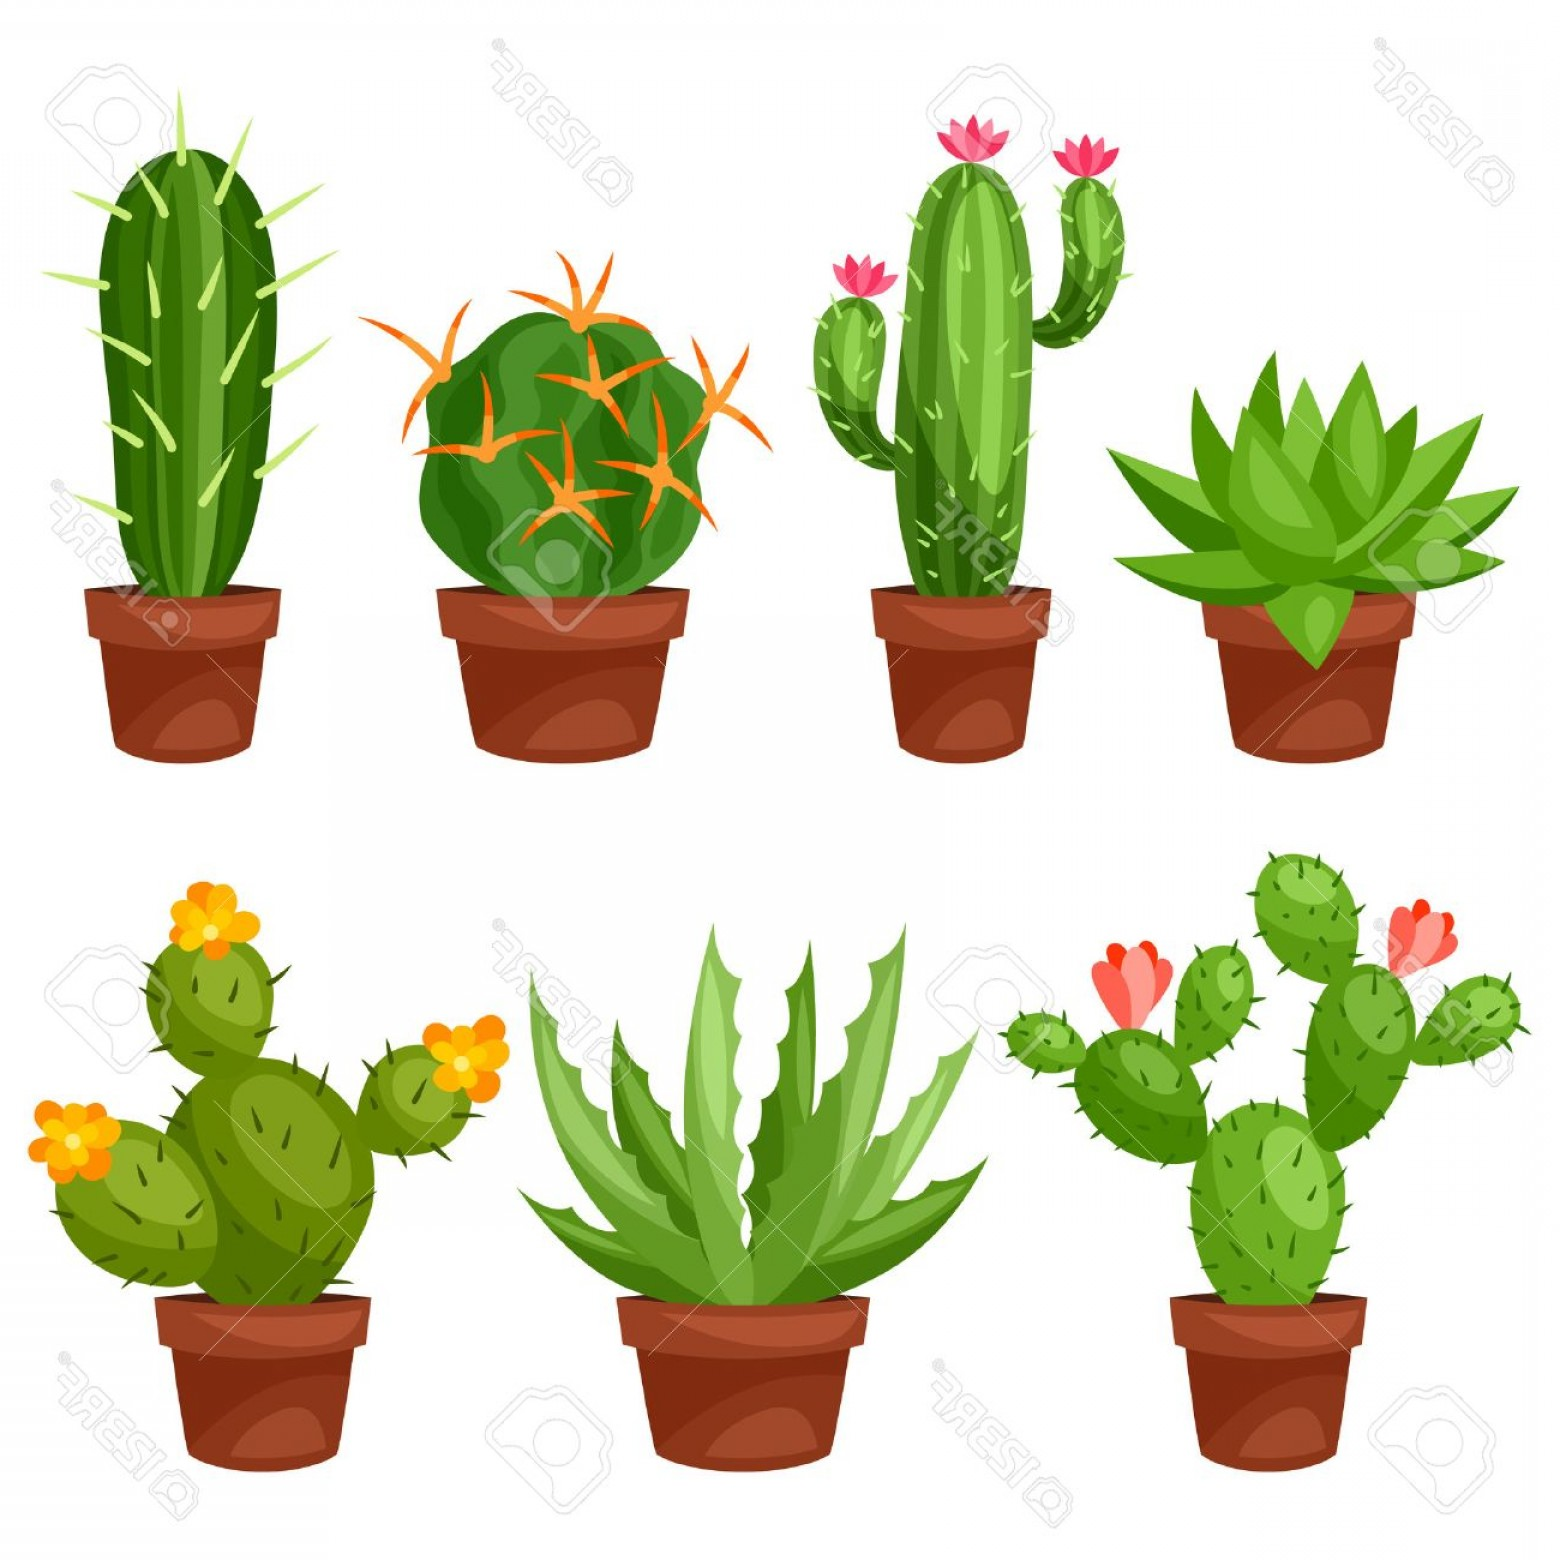 Cactus And Flower Vector: Photostock Vector Collection Of Abstract Cactuses In Flower Pot